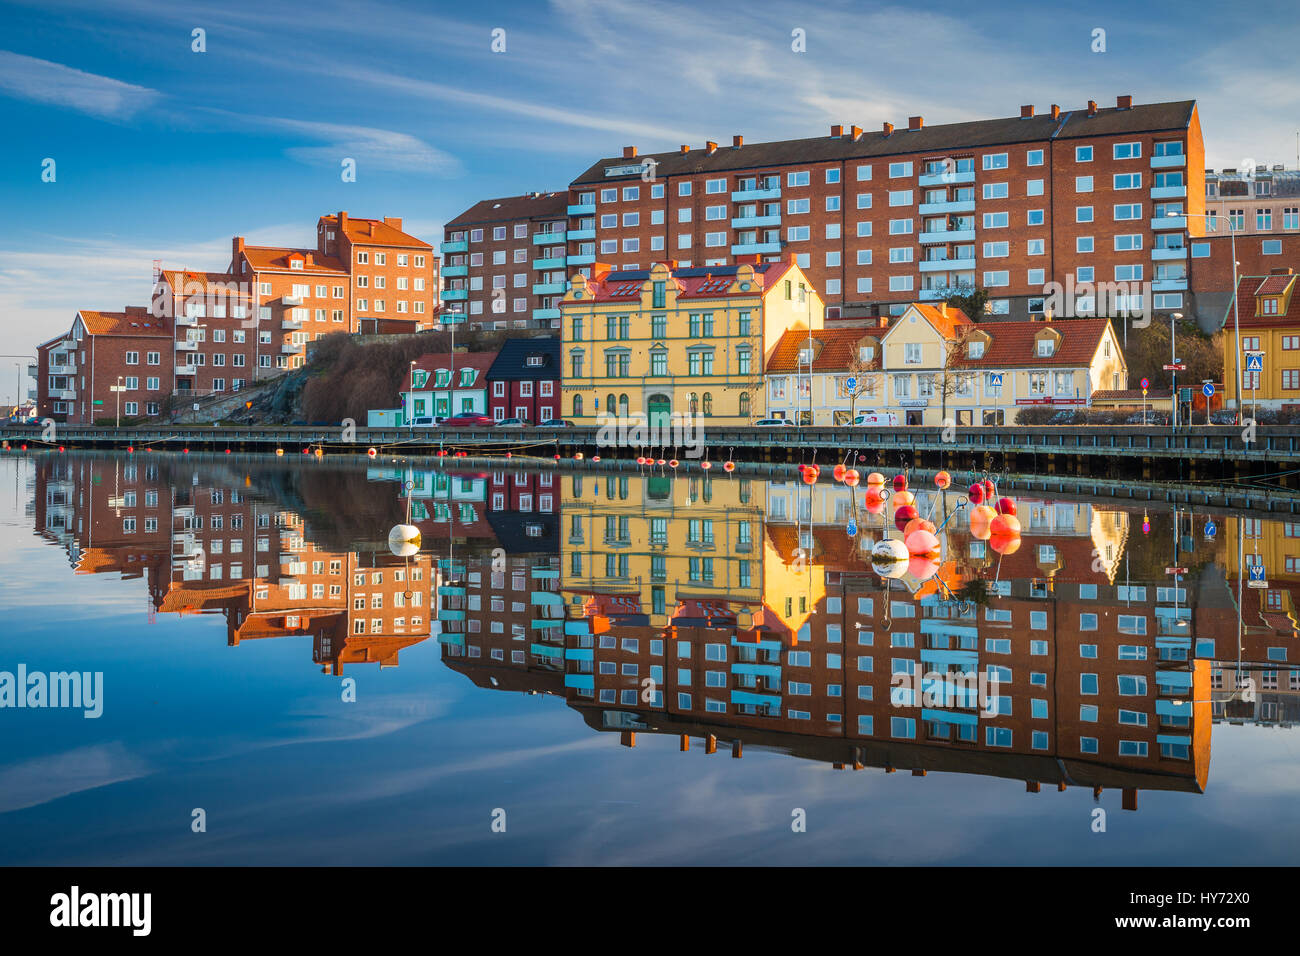 Karlskrona is a locality and the seat of Karlskrona Municipality, Blekinge County, Sweden. - Stock Image